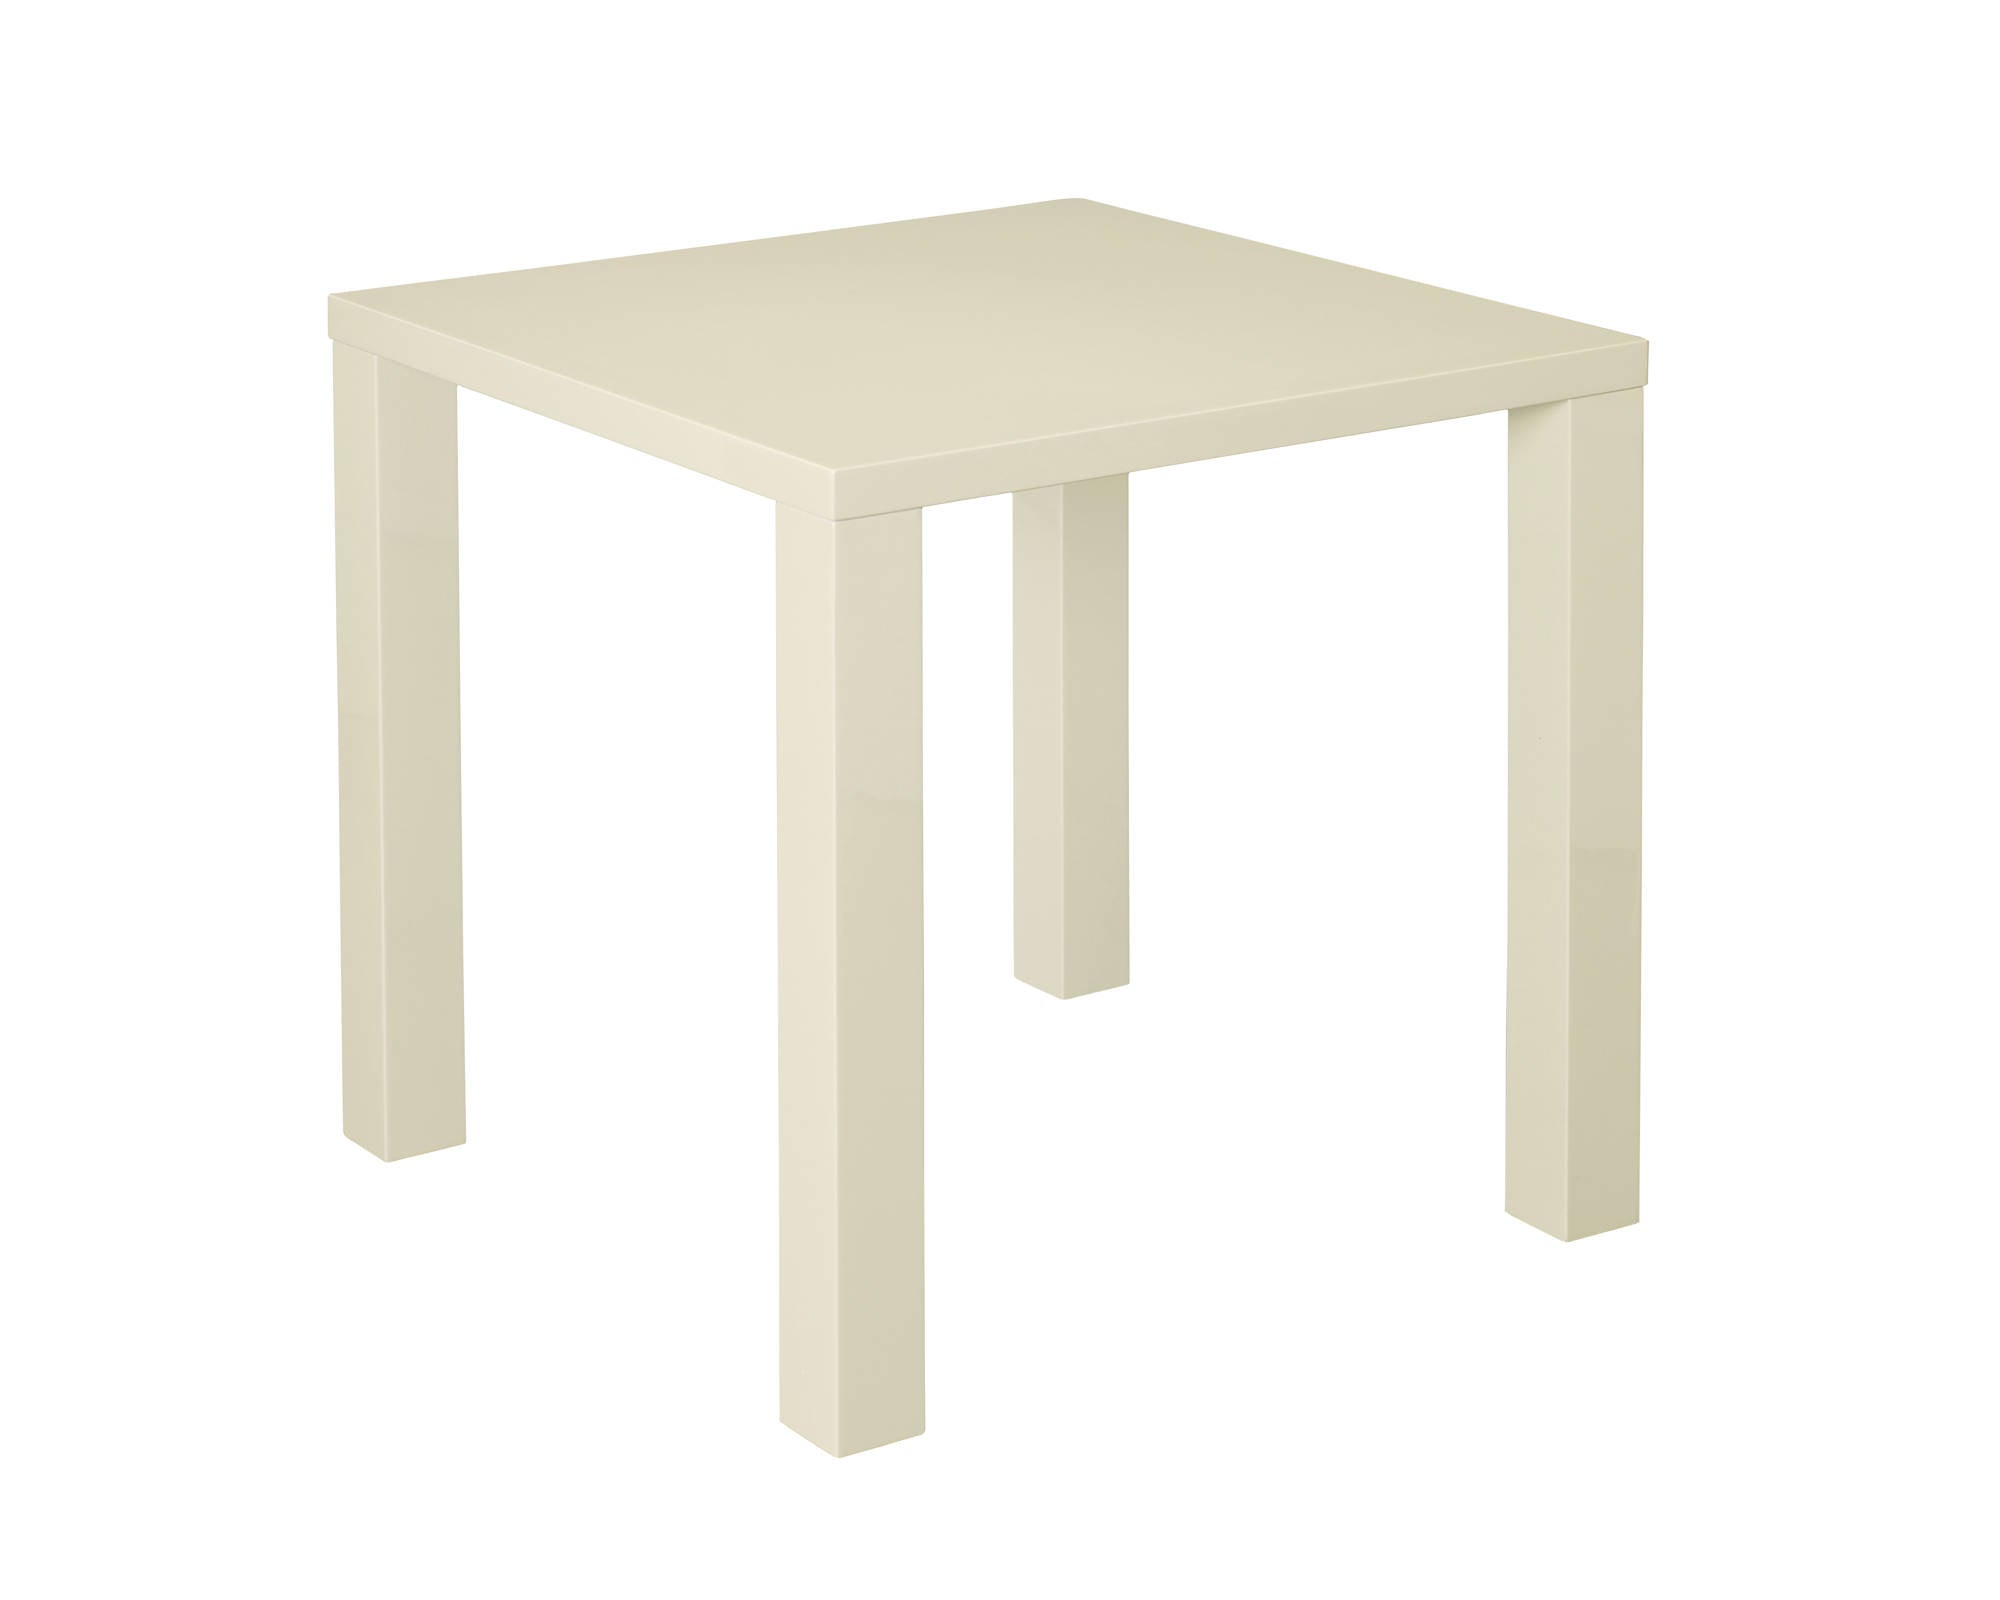 Sterling Small Dining Table in Cream - Ezzo